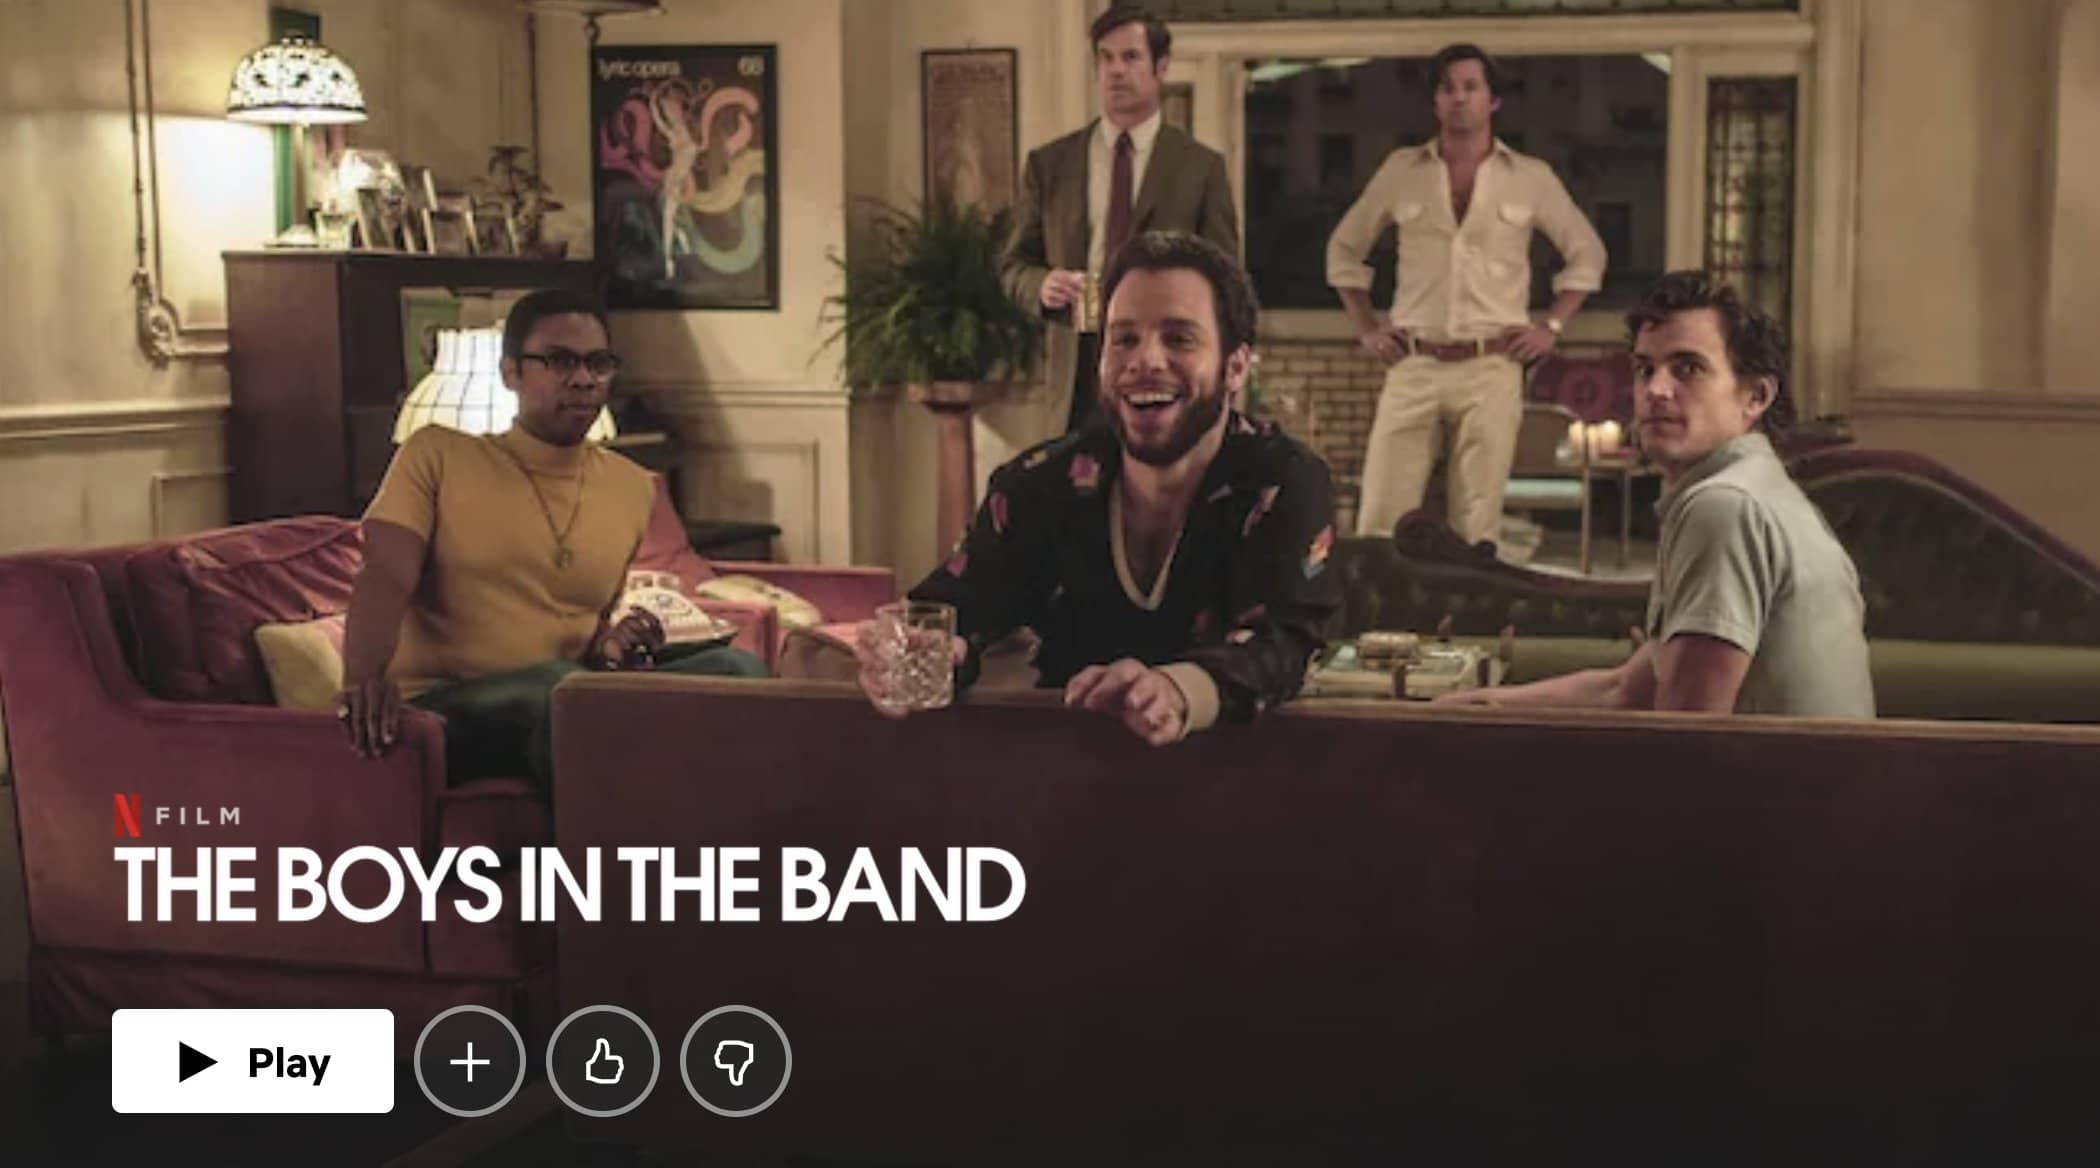 The Boys In The Band based on play